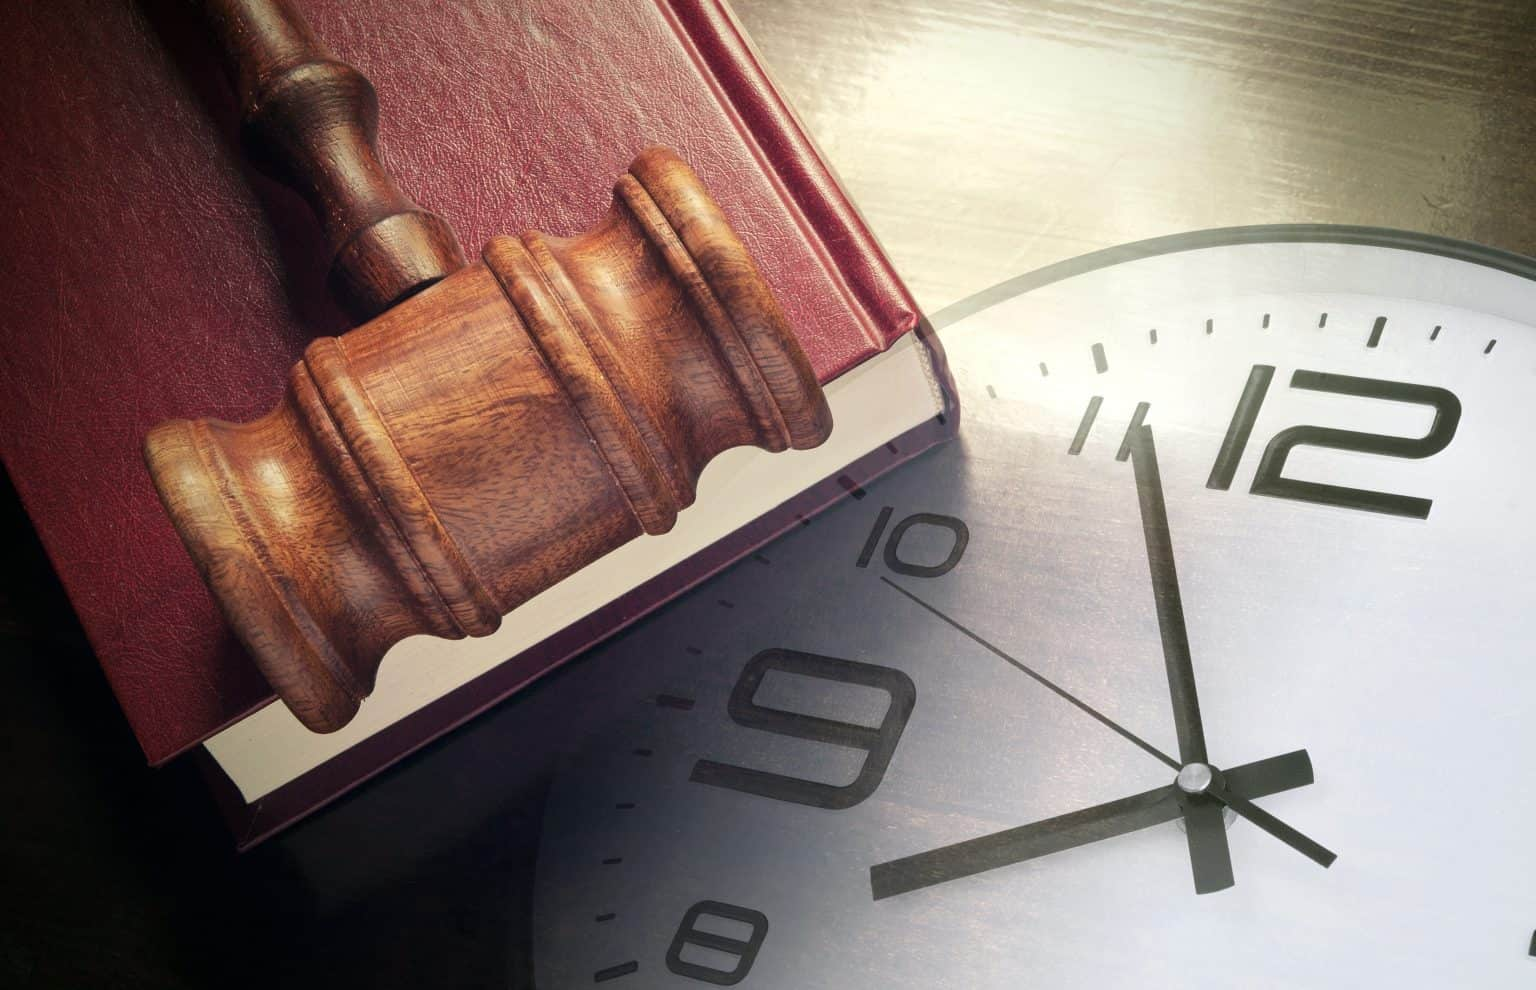 timeline of a family provision claim when contesting a will